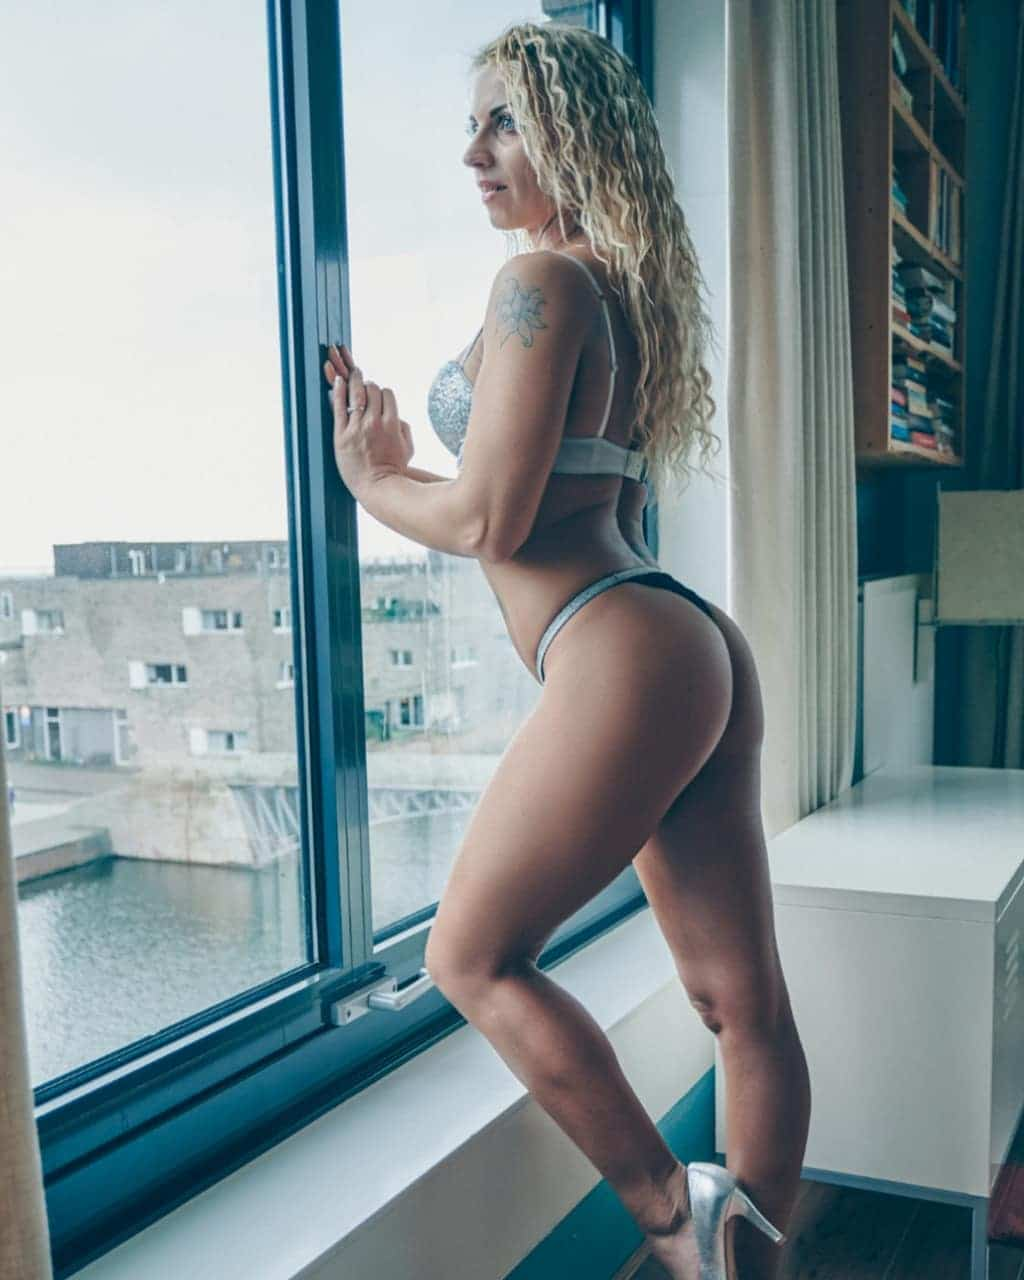 Beautiful blonde Dutch over 30 model and mom Willeke Bartels @willekebartels.fitmodel standing by the window looking away showing her hot inked body and long sexy legs wearing silver lingerie in a boudoir photo session